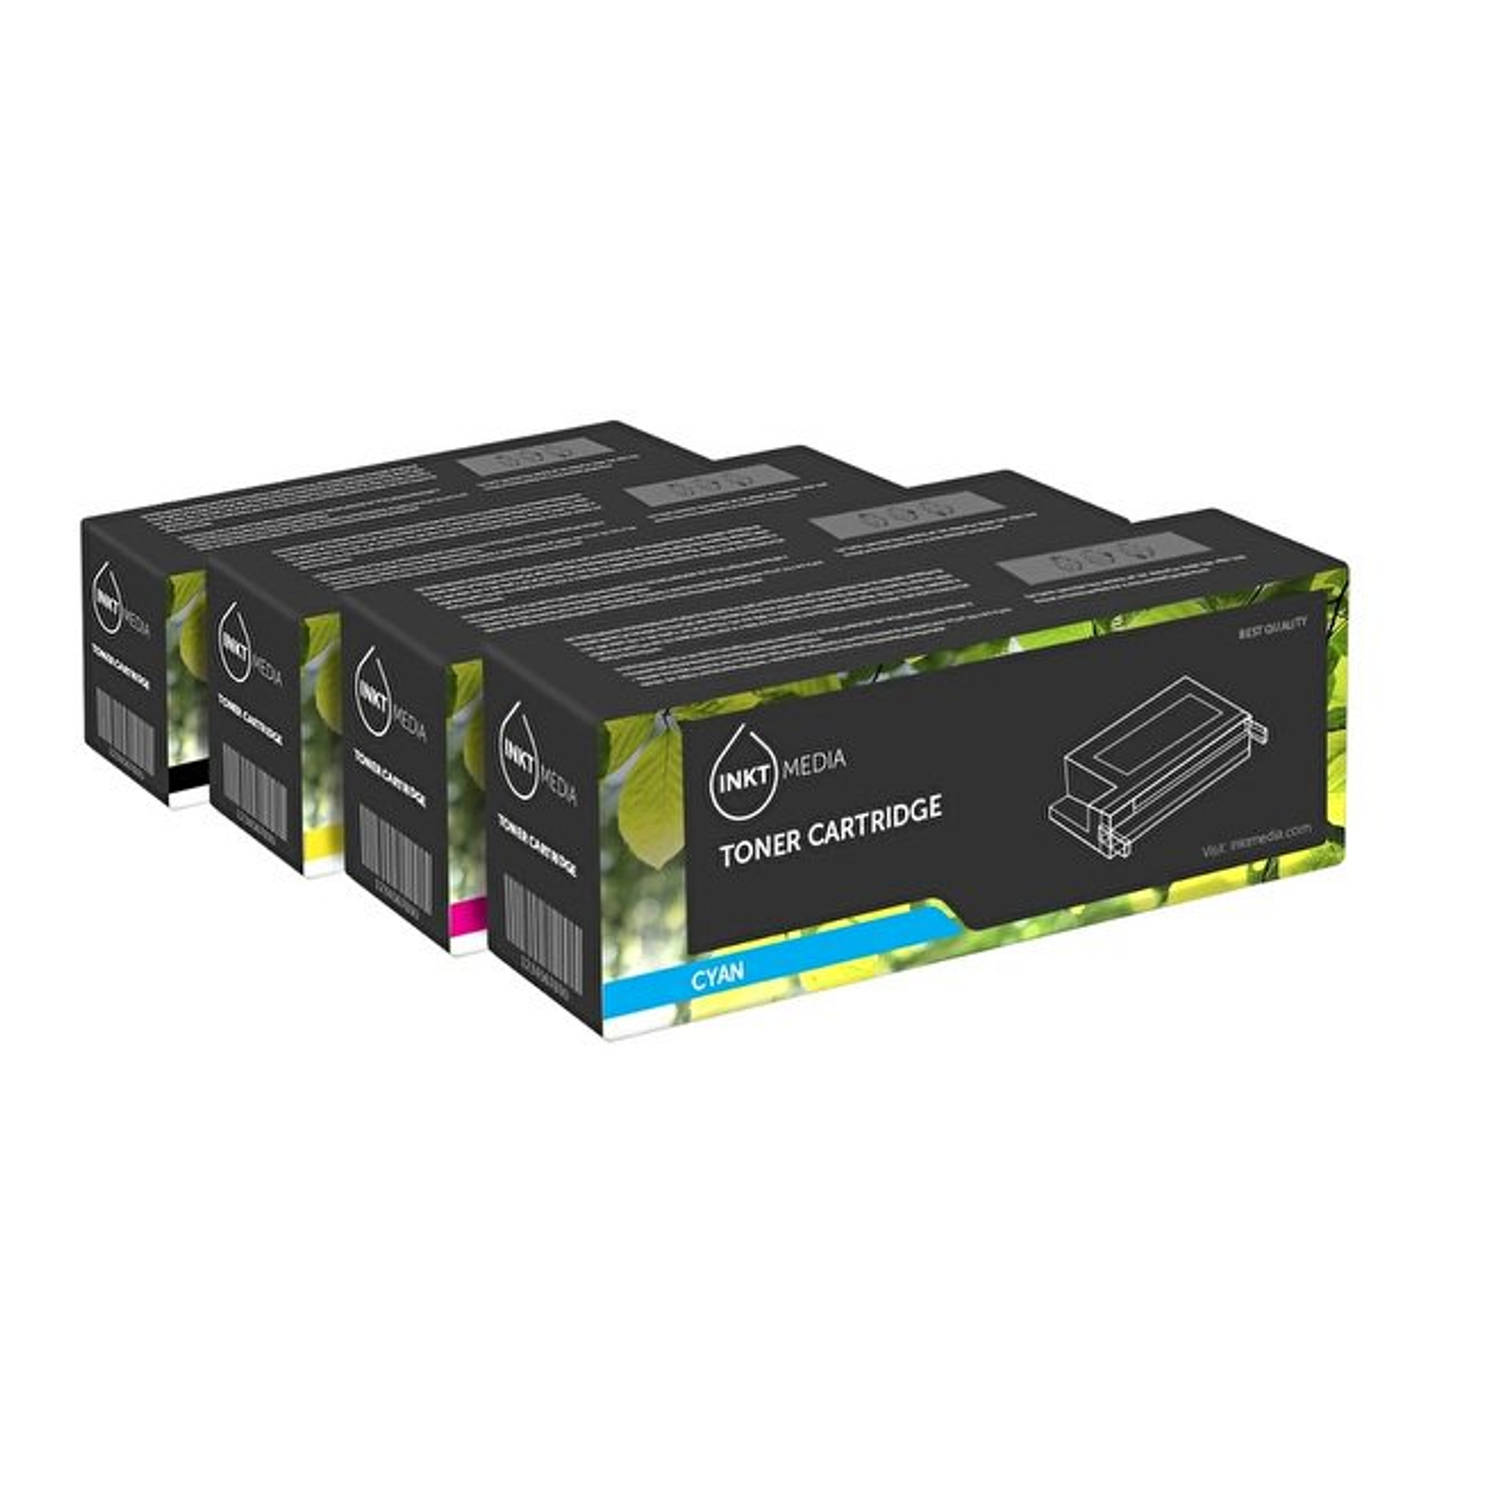 Inktmedia® - Toner cartridge - Alternatief voor de HP CF210X, 211A, 212A, 213A